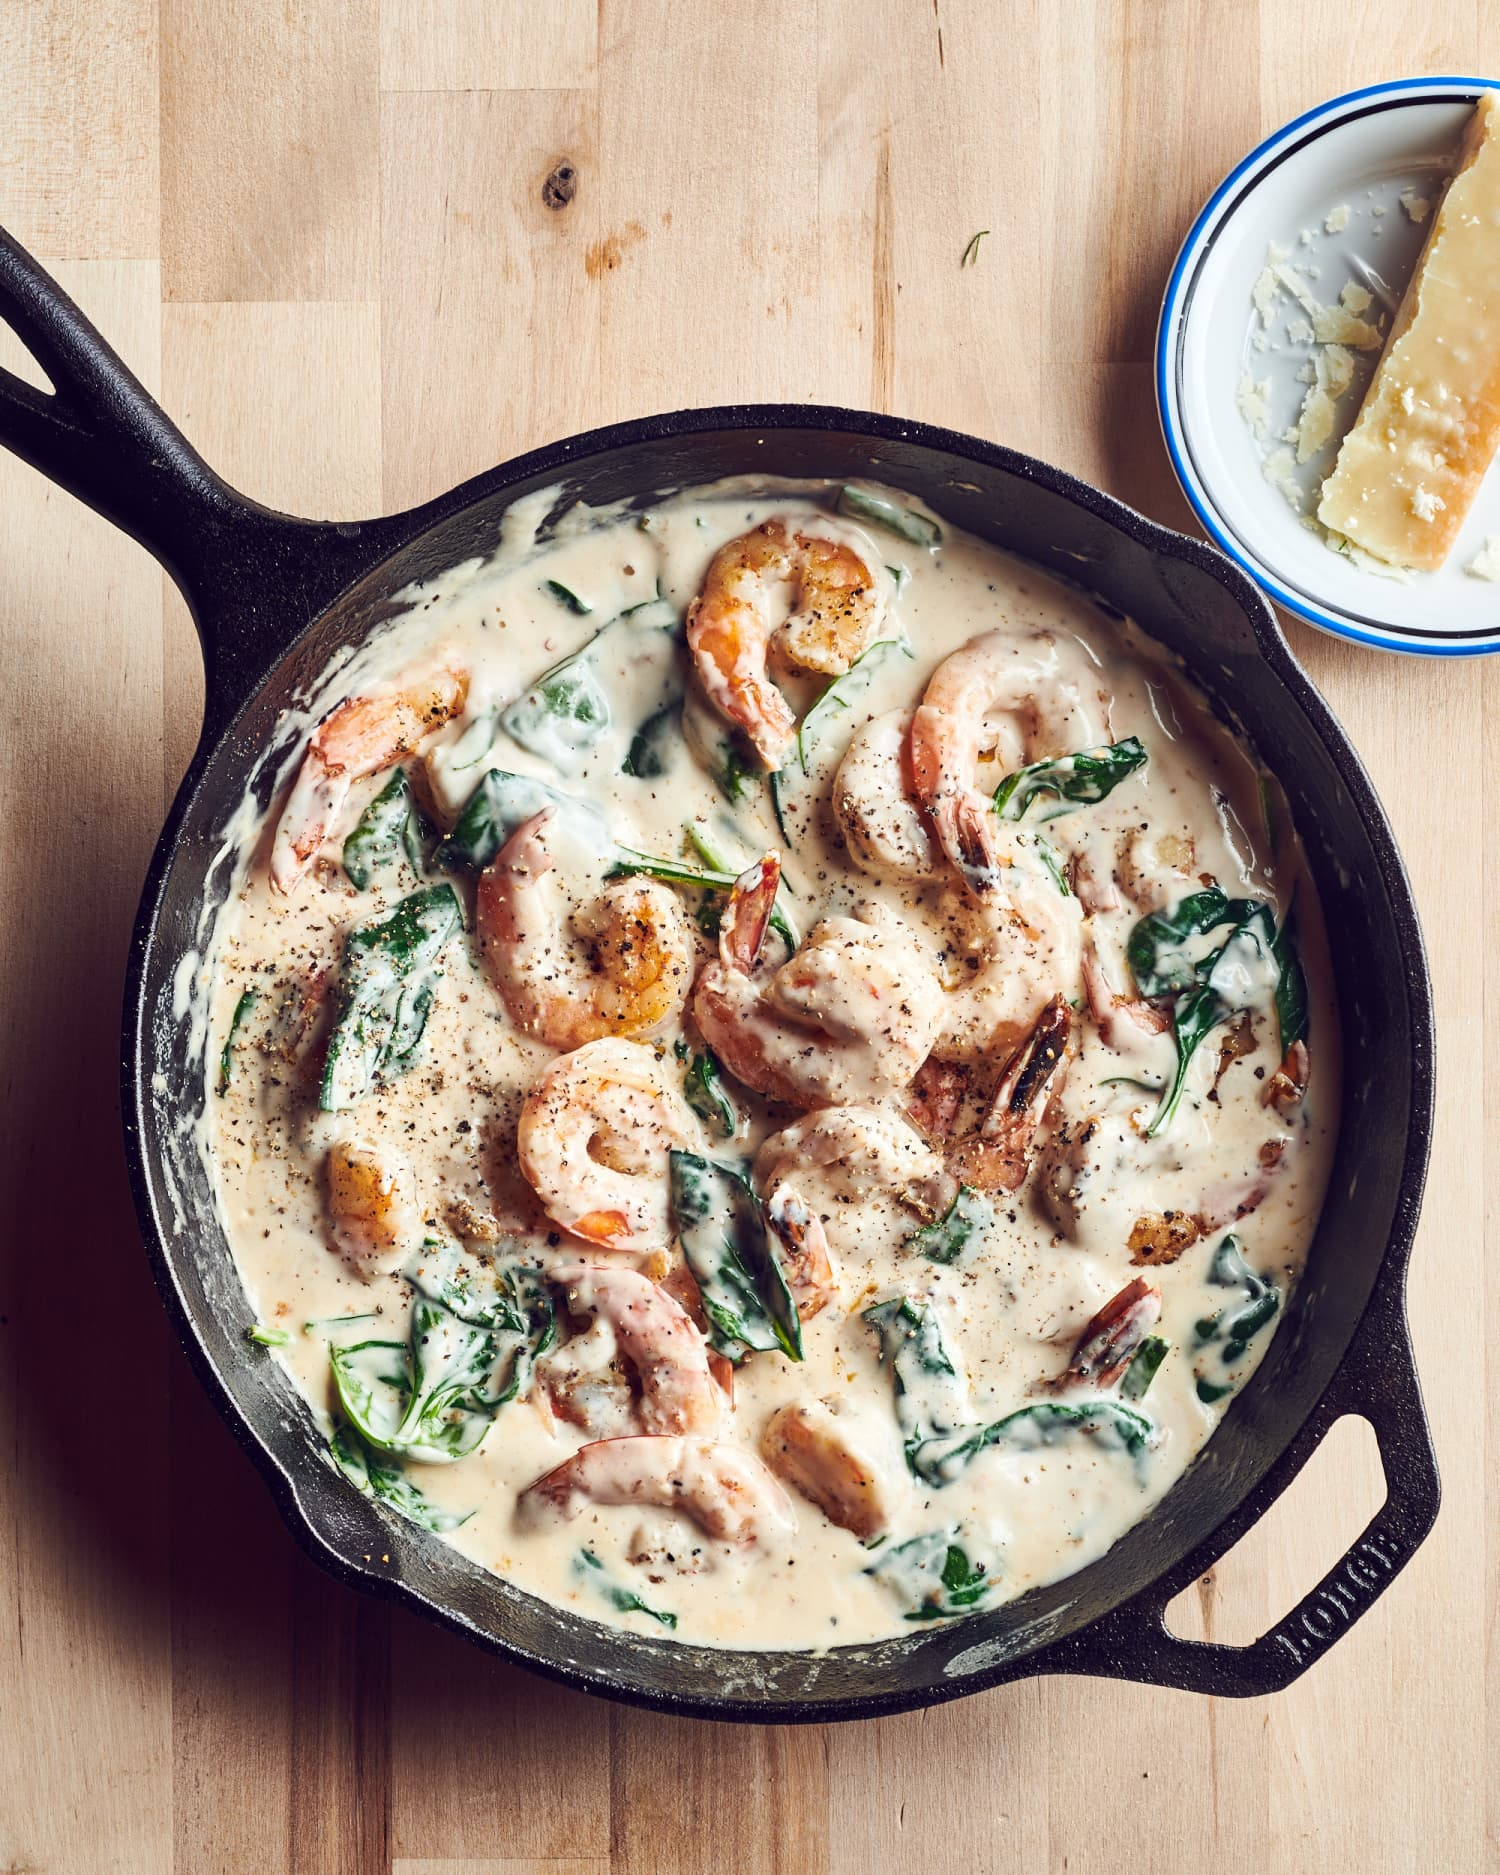 The 20-Minute Creamy Shrimp Dinner You'll Want to Make on Repeat